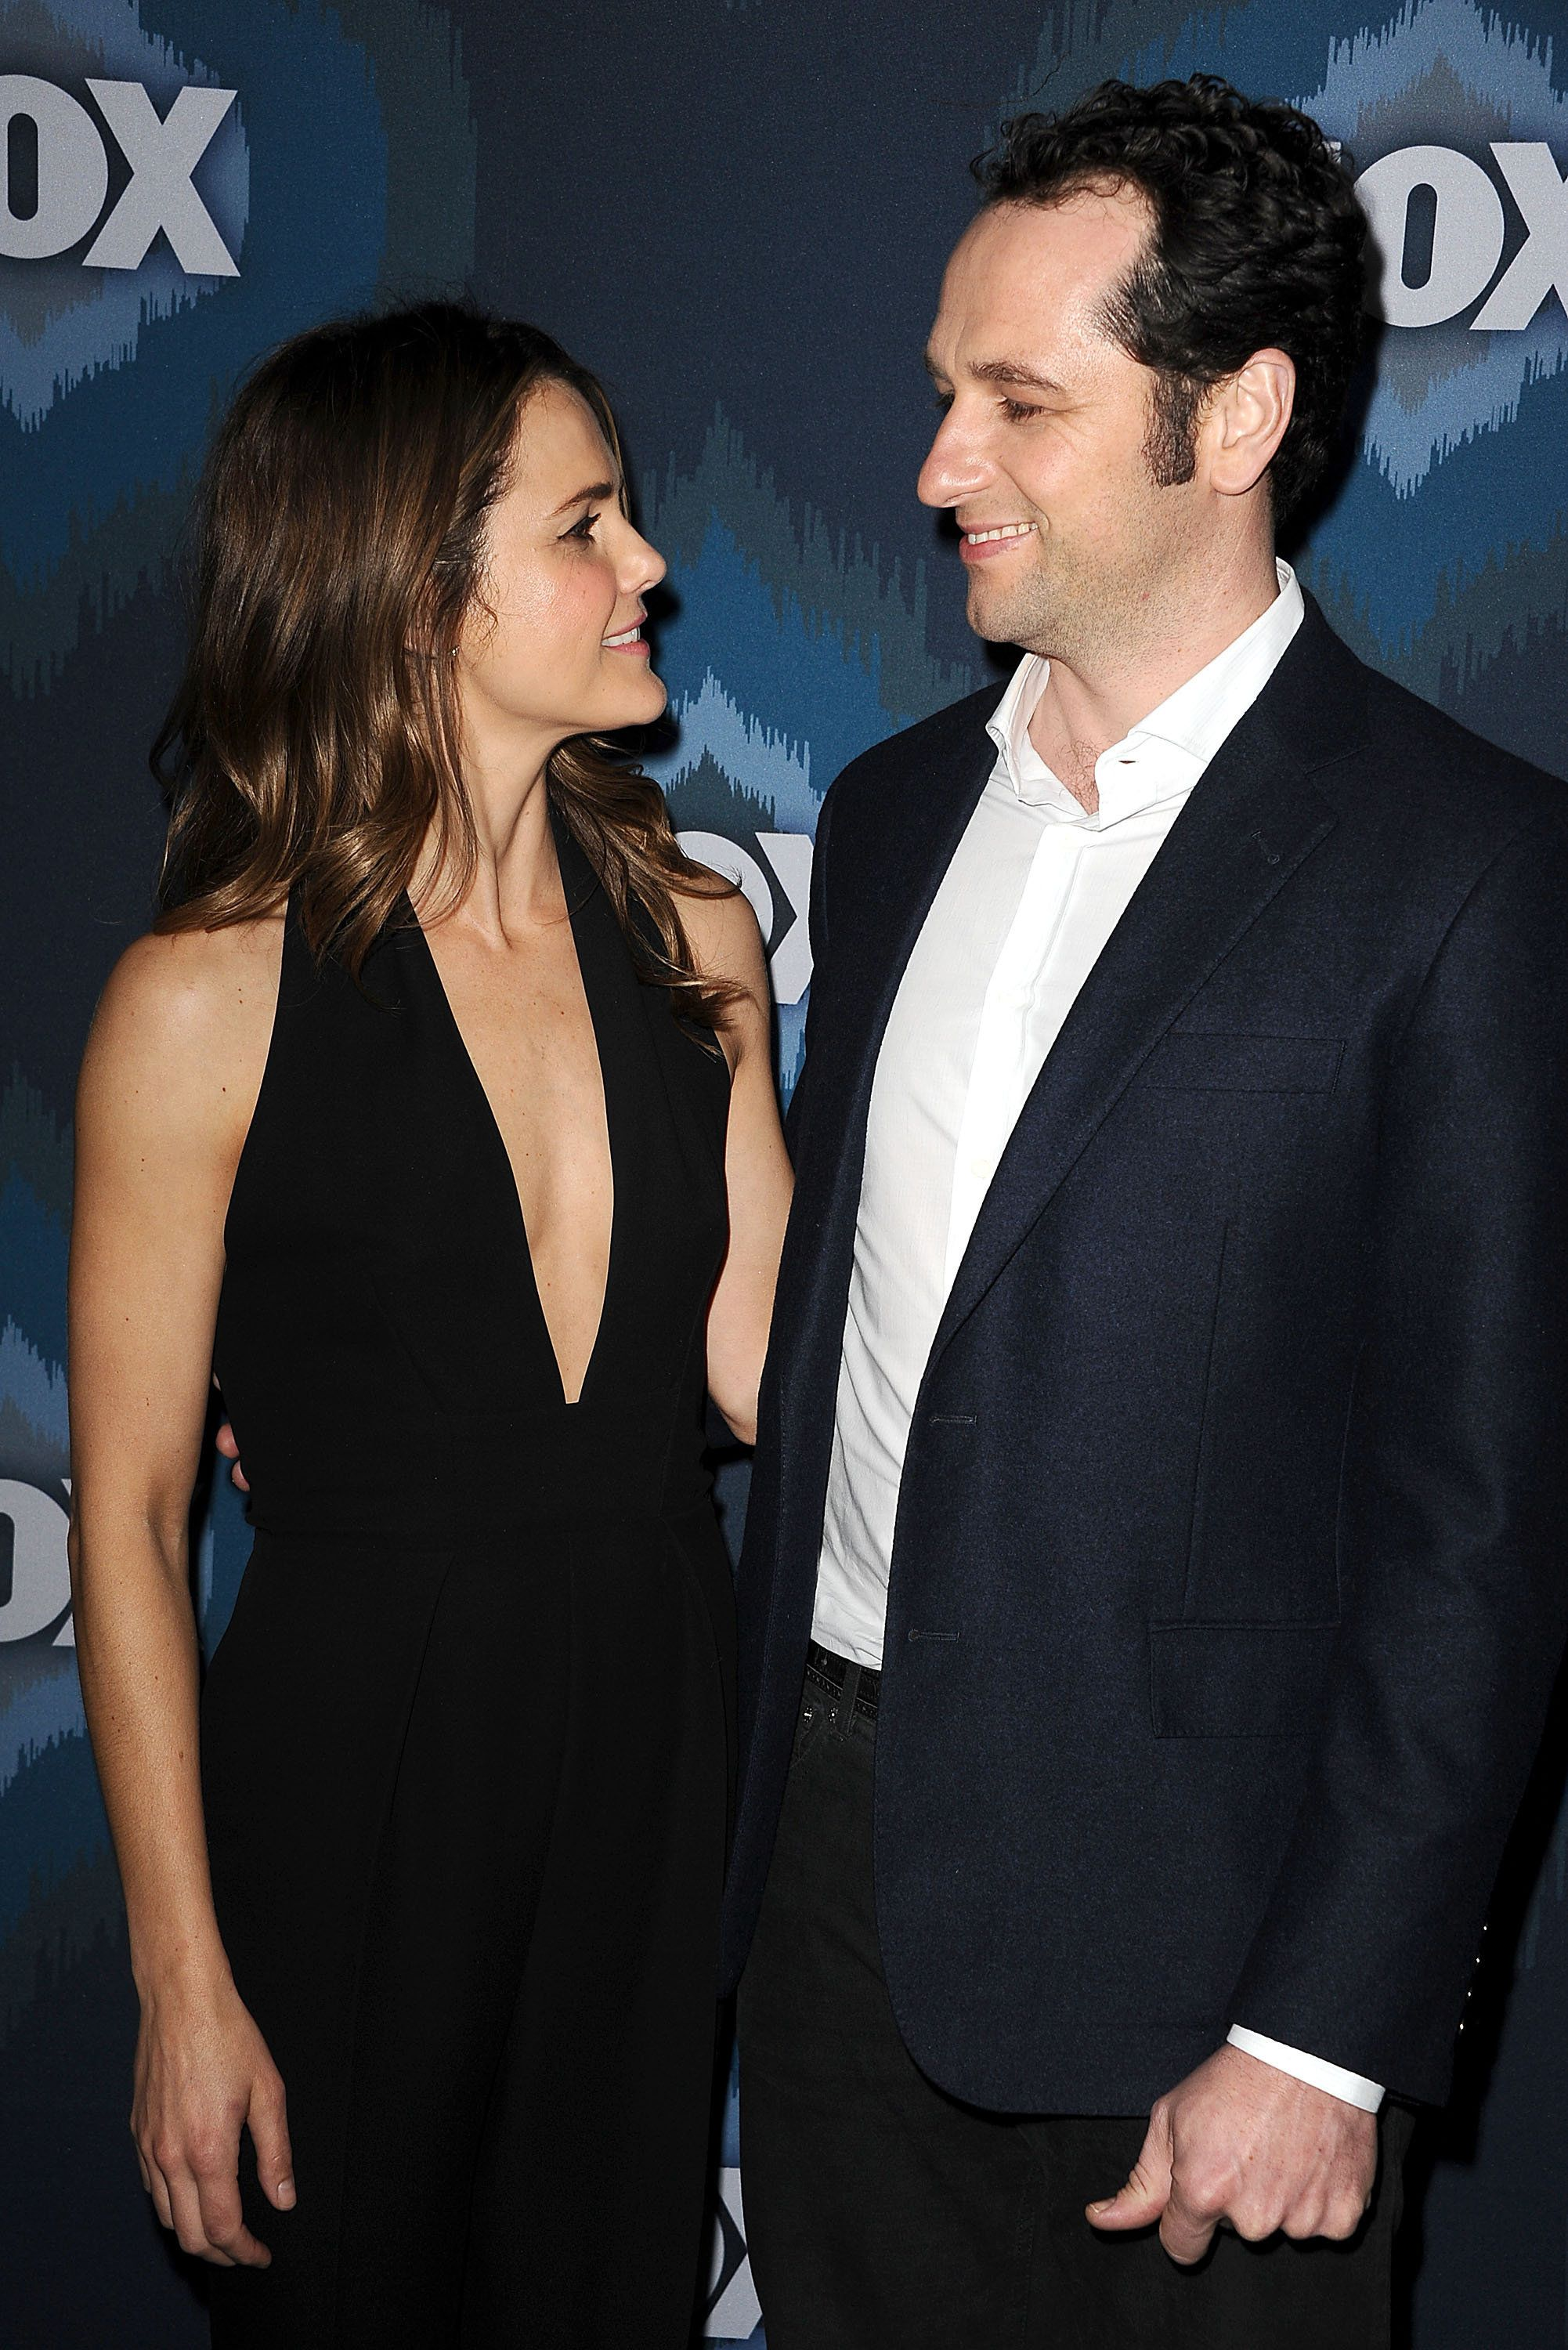 PASADENA, CA - JANUARY 17:  Actress Keri Russell and actor Matthew Rhys attend the FOX winter TCA All-Star party at Langham Hotel on January 17, 2015 in Pasadena, California.  (Photo by Jason LaVeris/FilmMagic)